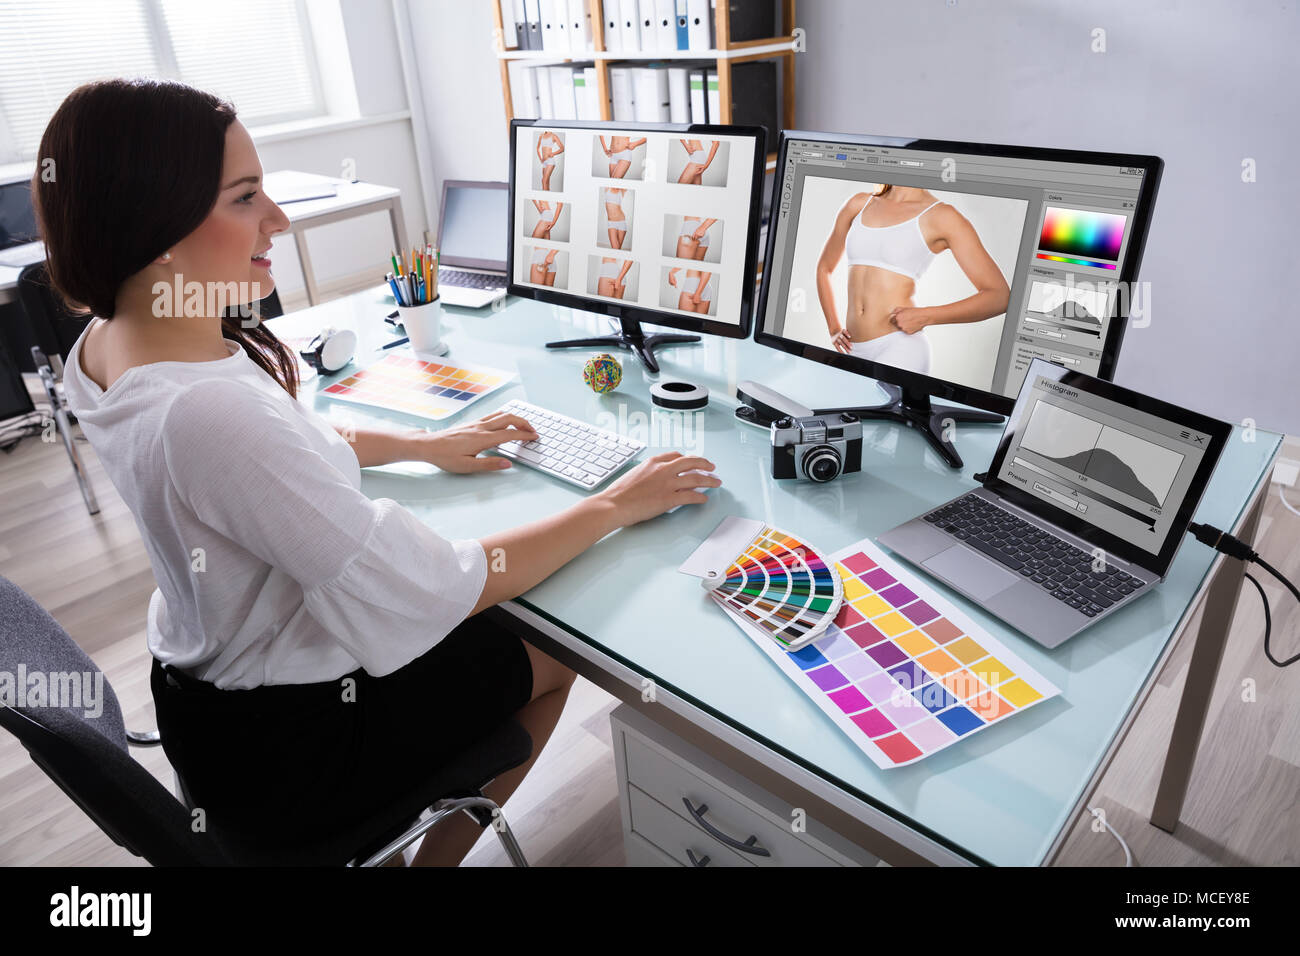 Happy Young Female Designer Working With Photographs On Multiple Computer At Workplace Stock Photo